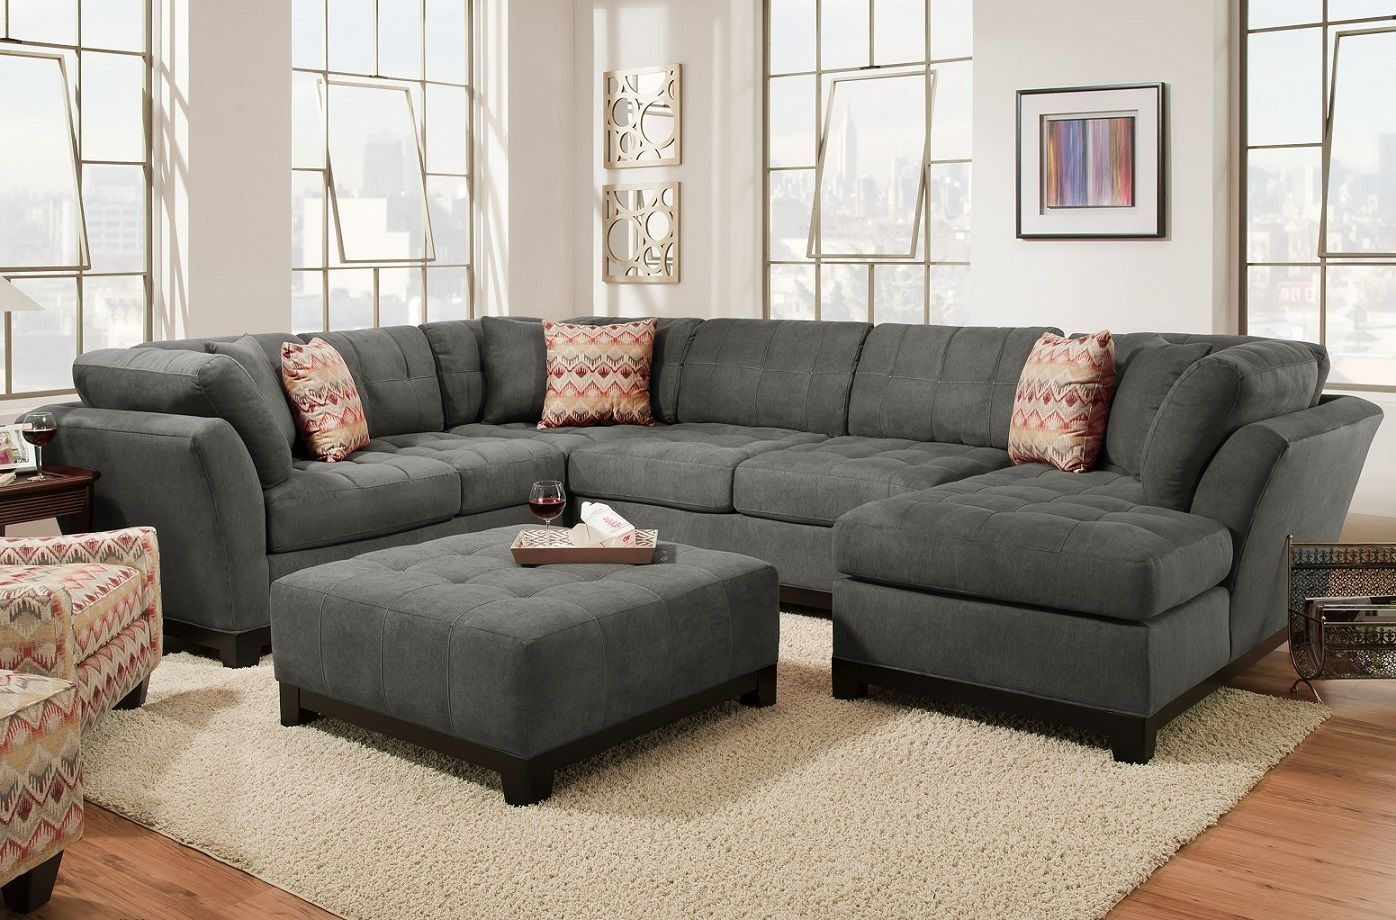 Best Loxley Charcoal Sectional 3 Piece Sectional Sofa 400 x 300